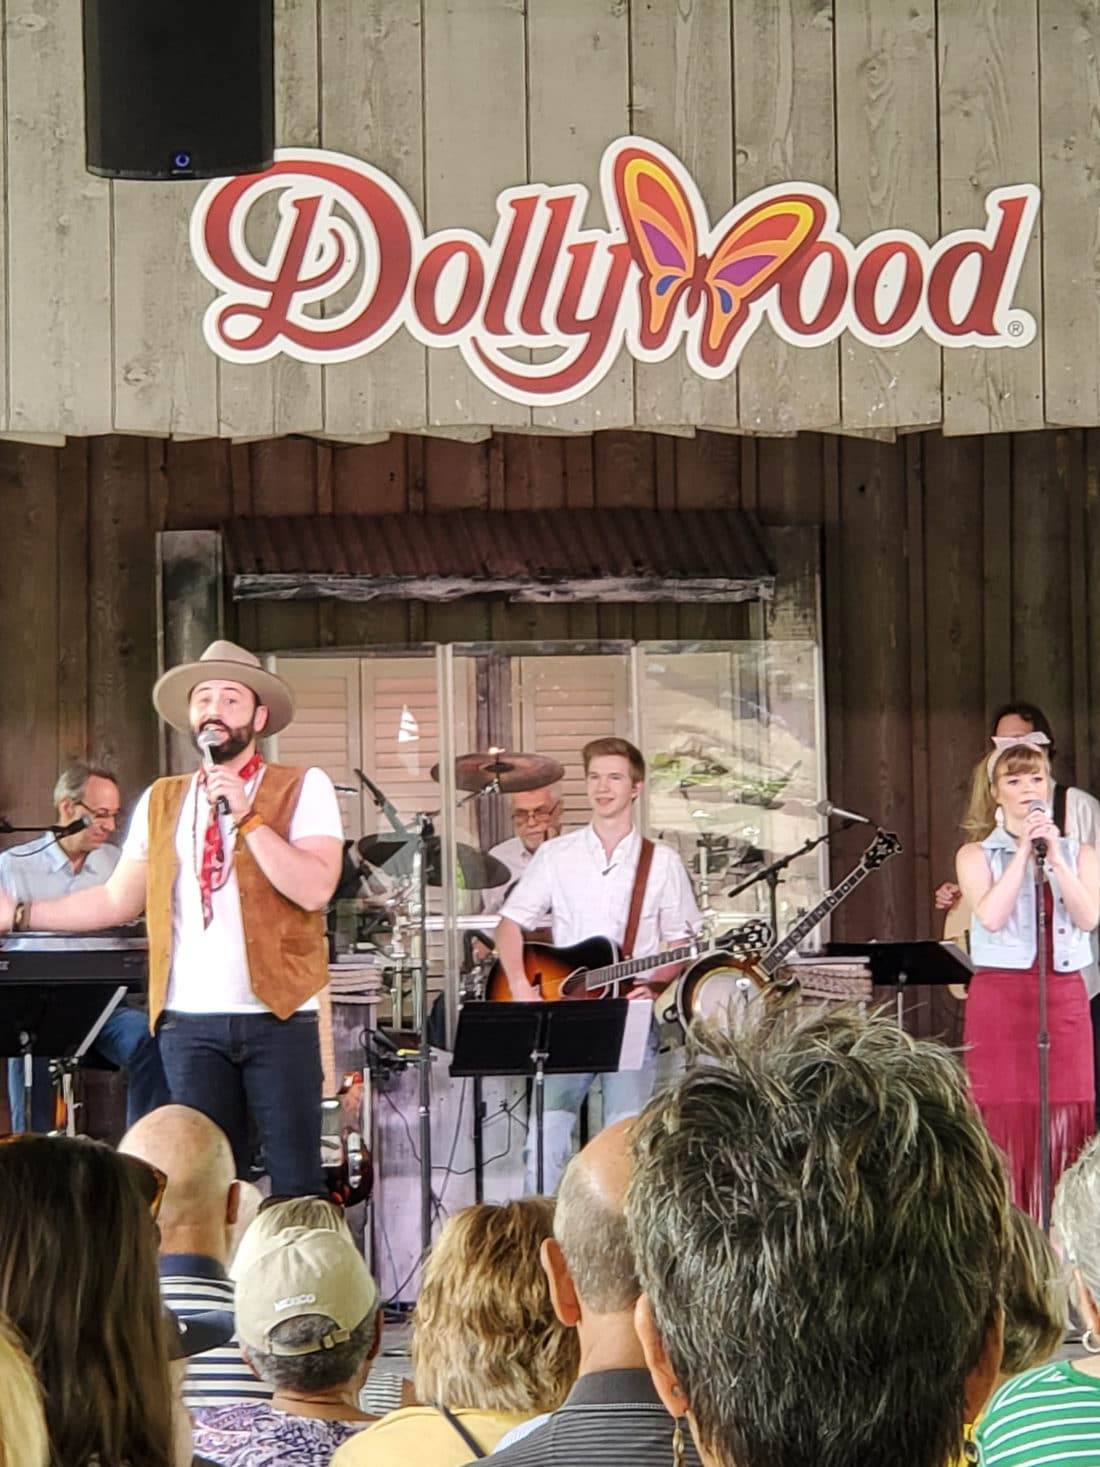 Dollywood Live Entertainment. My family spent the day playing and eating at the Dollywood theme park, and we are happy to report we had a blast! Read all about our trip and learn why Dollwood is a must visit destination while you are in Pigeon Forge, TN.